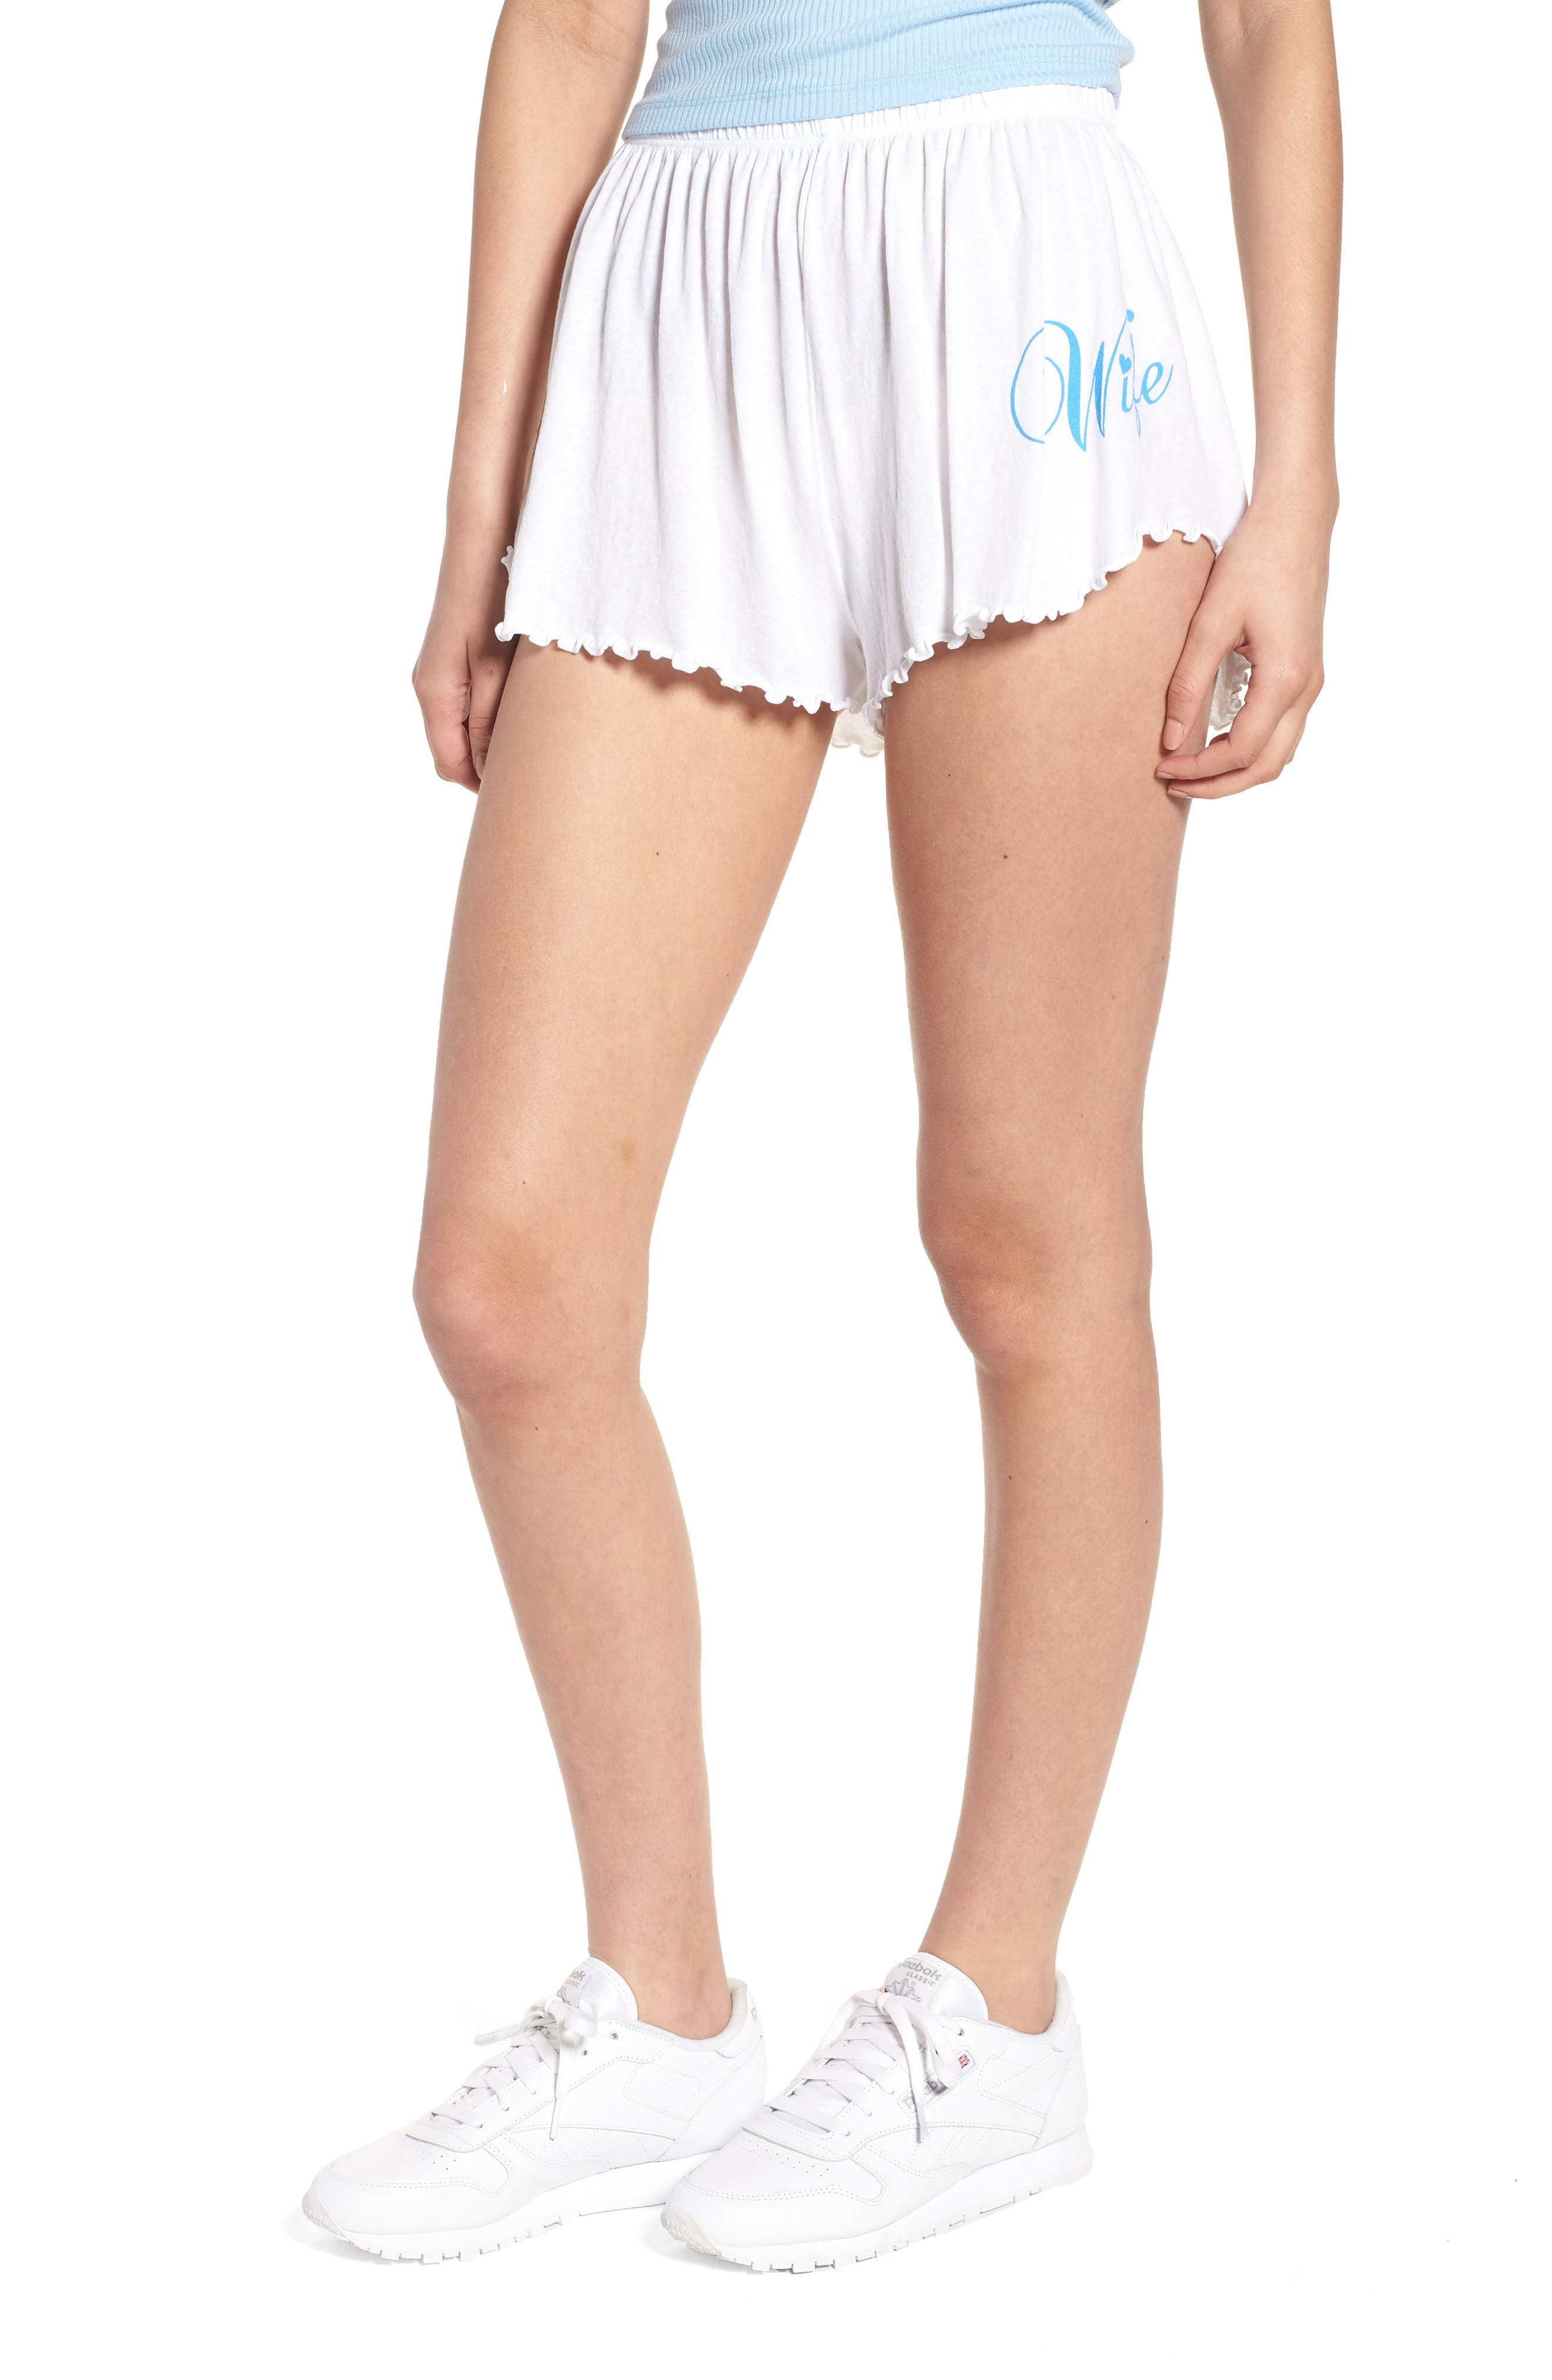 Wife Shorts,                         Main,                         color, Clean White